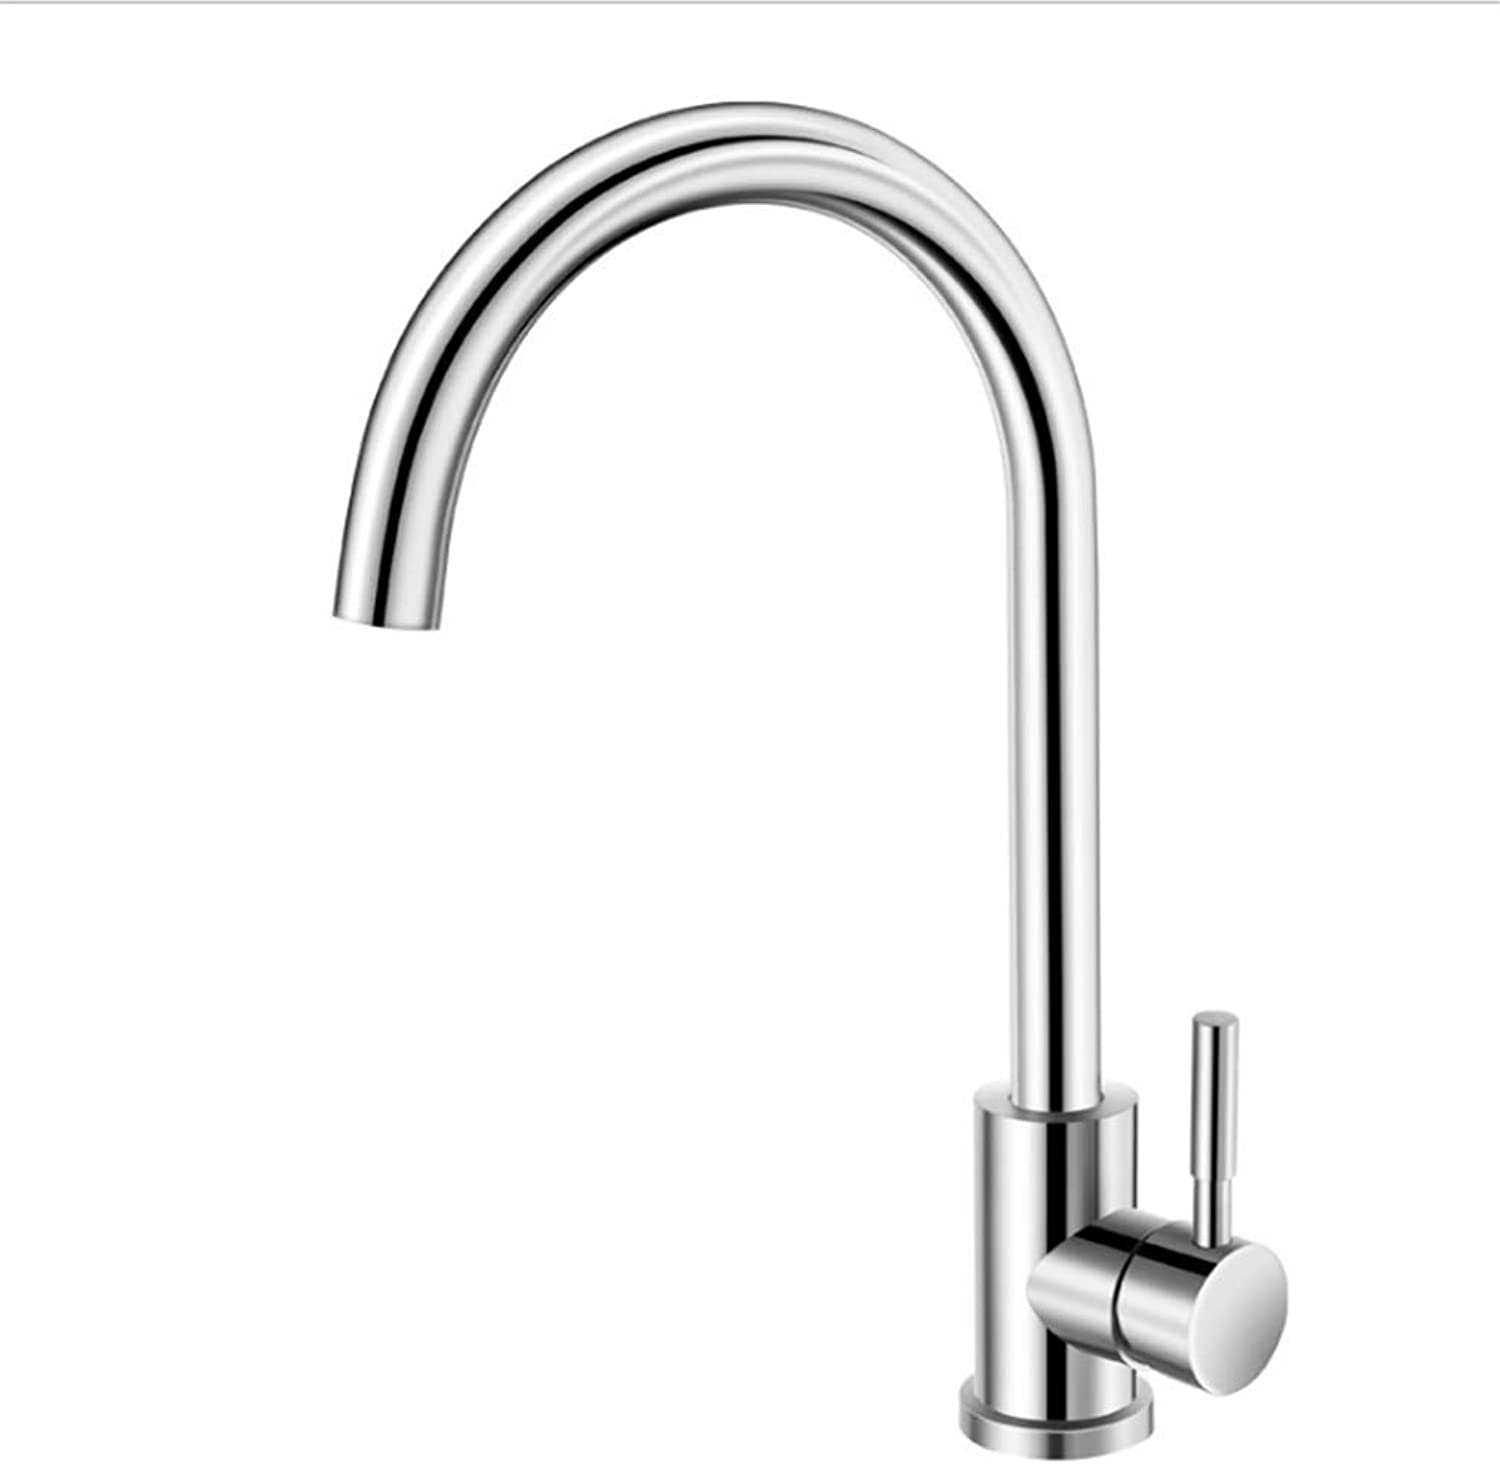 Kitchen Taps Faucet Modern Kitchen Sink Taps Stainless Steel304 Stainless Steel Lead-Free Kitchen Faucet Kitchen Hot and Cold Water Faucet